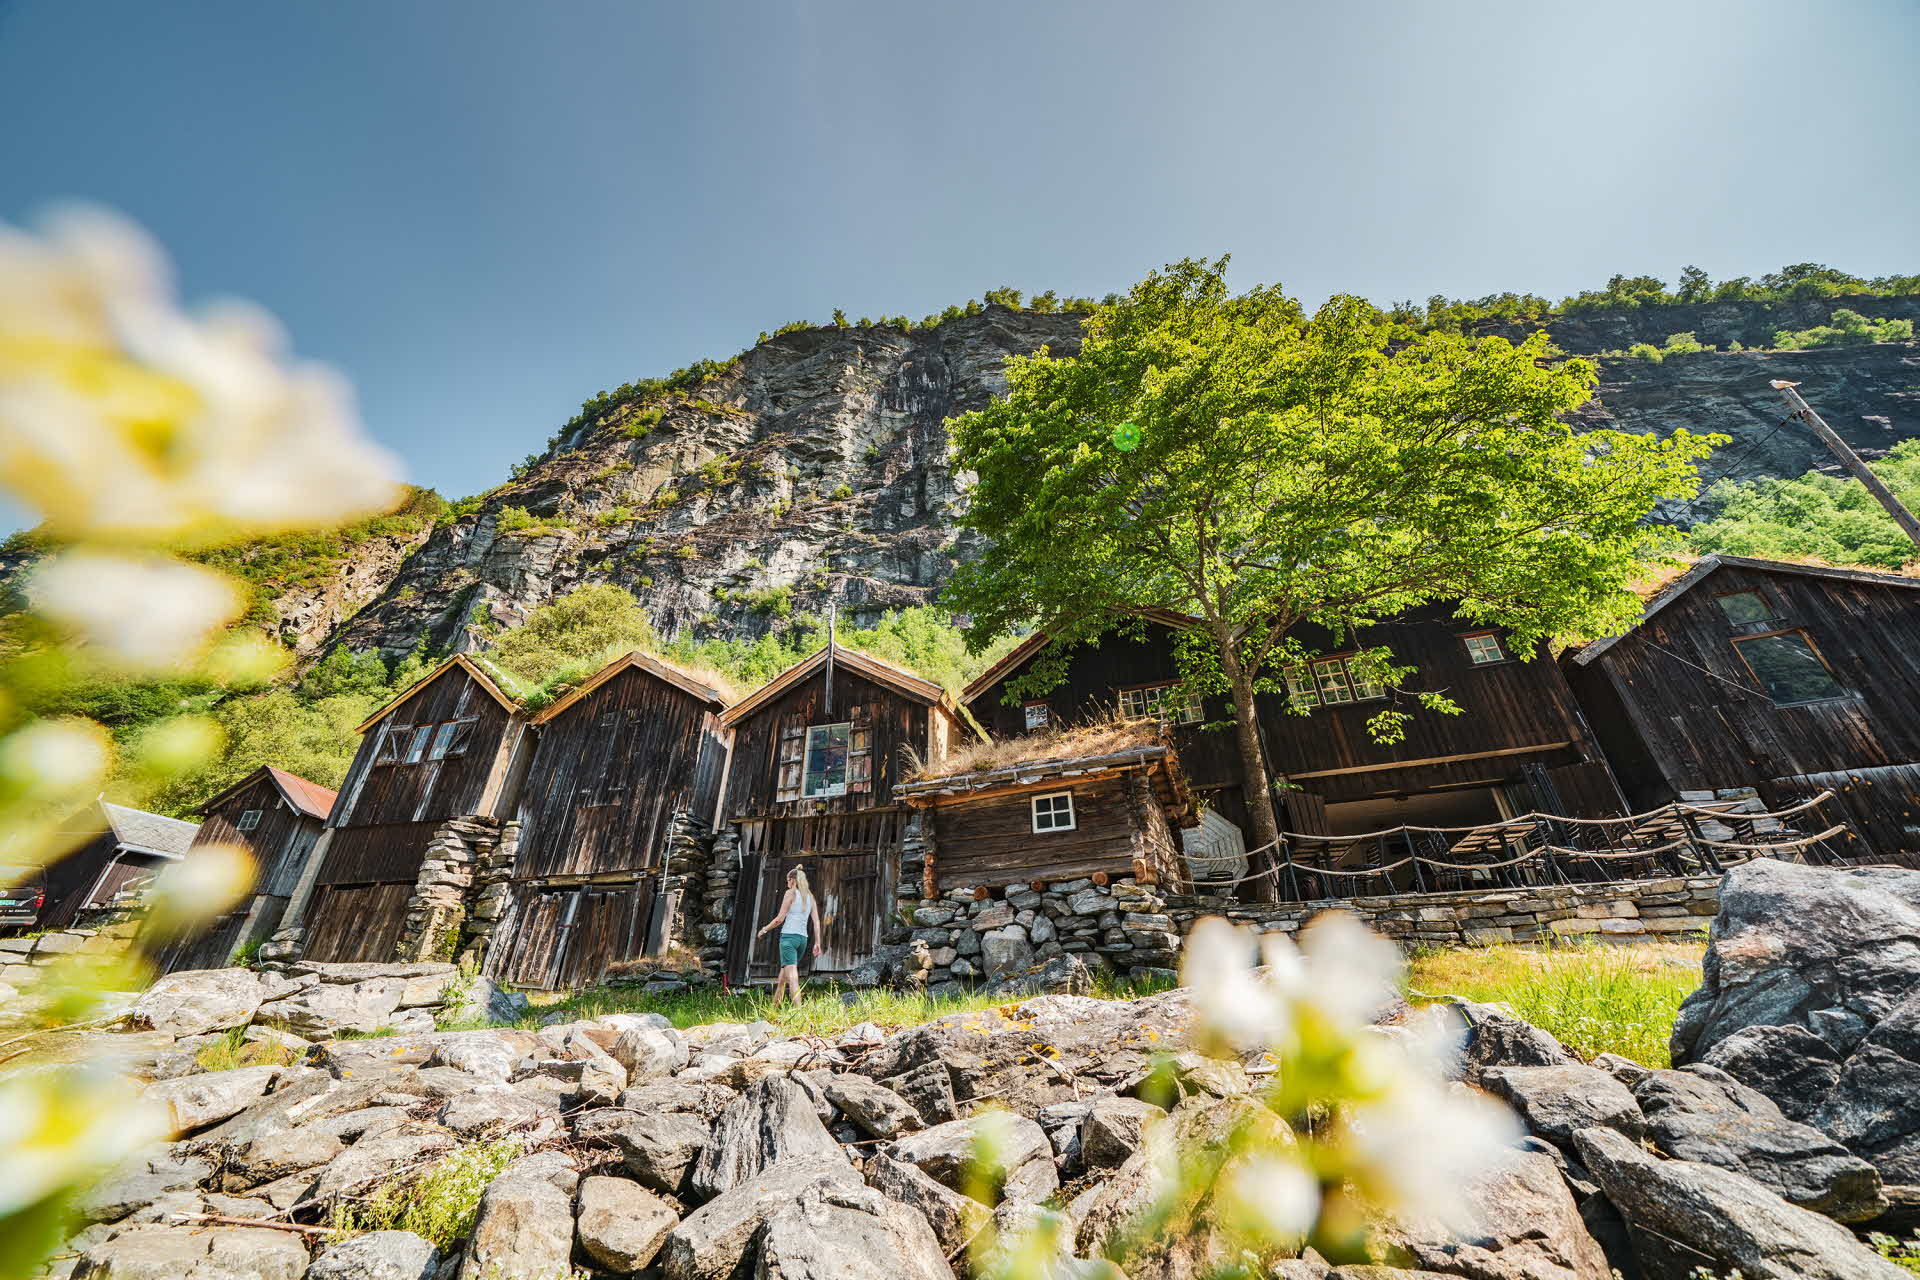 Old wooden houses next to the Geirangerfjord with steep mountains in the background